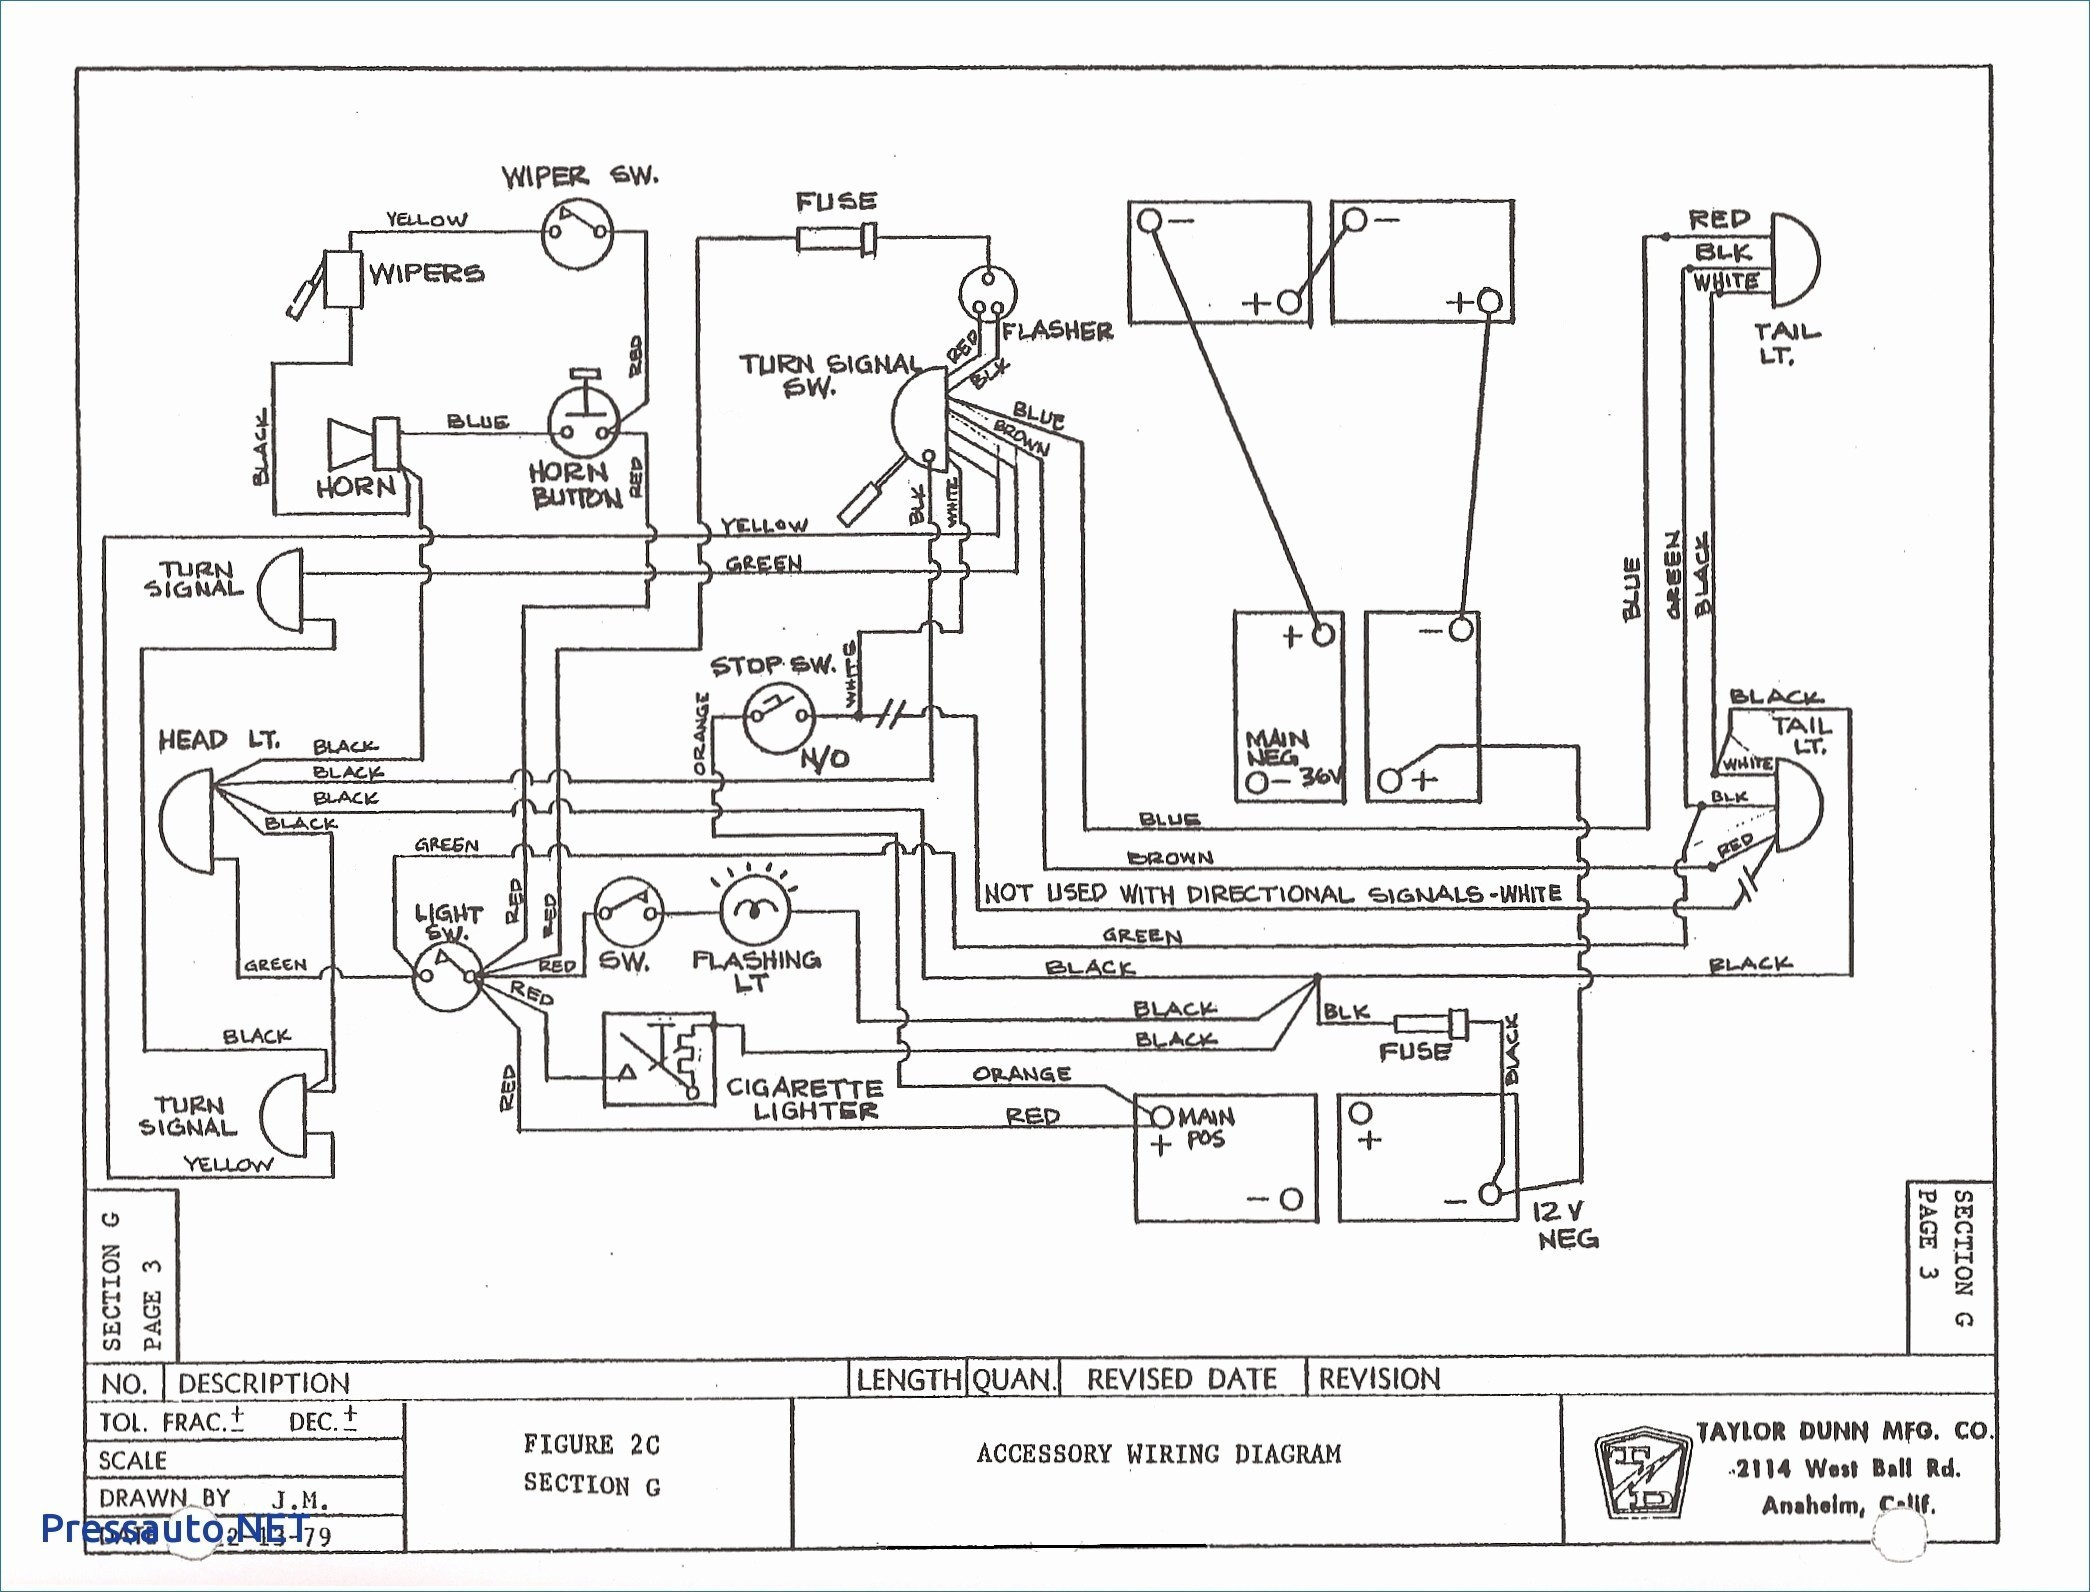 ezgo 36 volt battery wiring diagram kia rio 2003 radio txt library club car awesome image